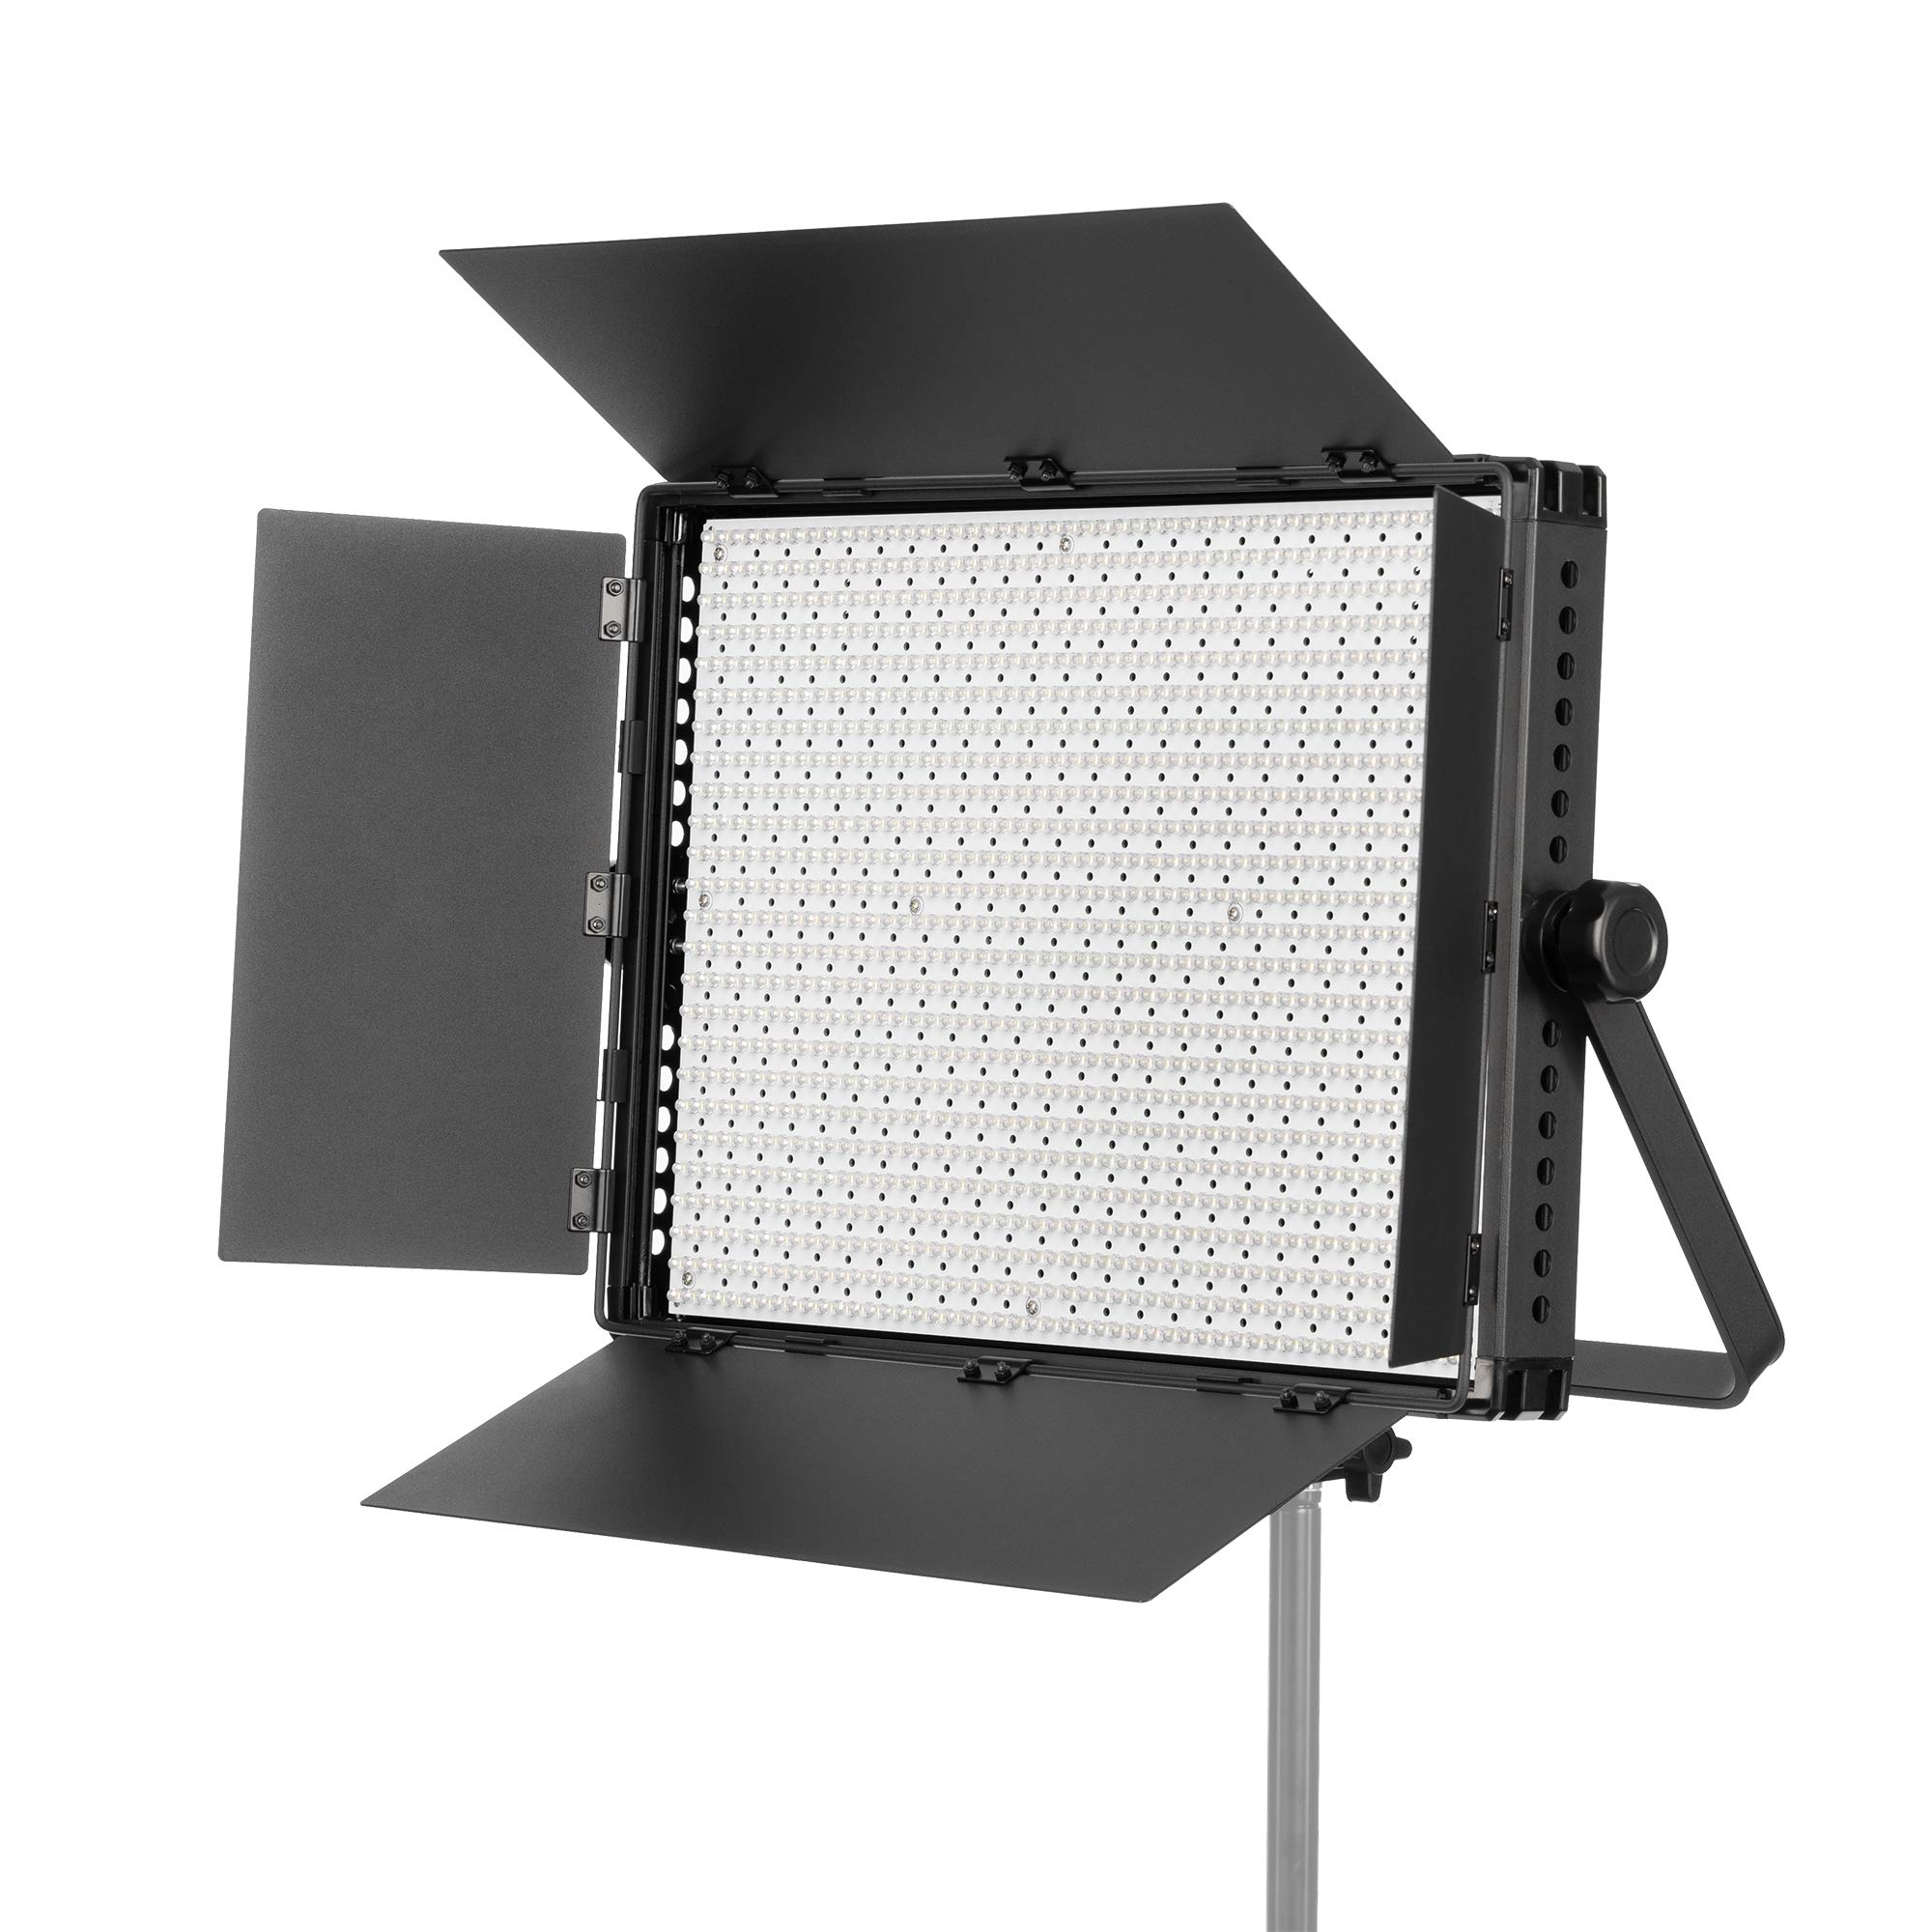 FOVITEC - Ultra-Bright 1200 LED Daylight Panel for Video and Photo with Barndoors, DMX, V-Lock Mount, and Case by FOVITEC